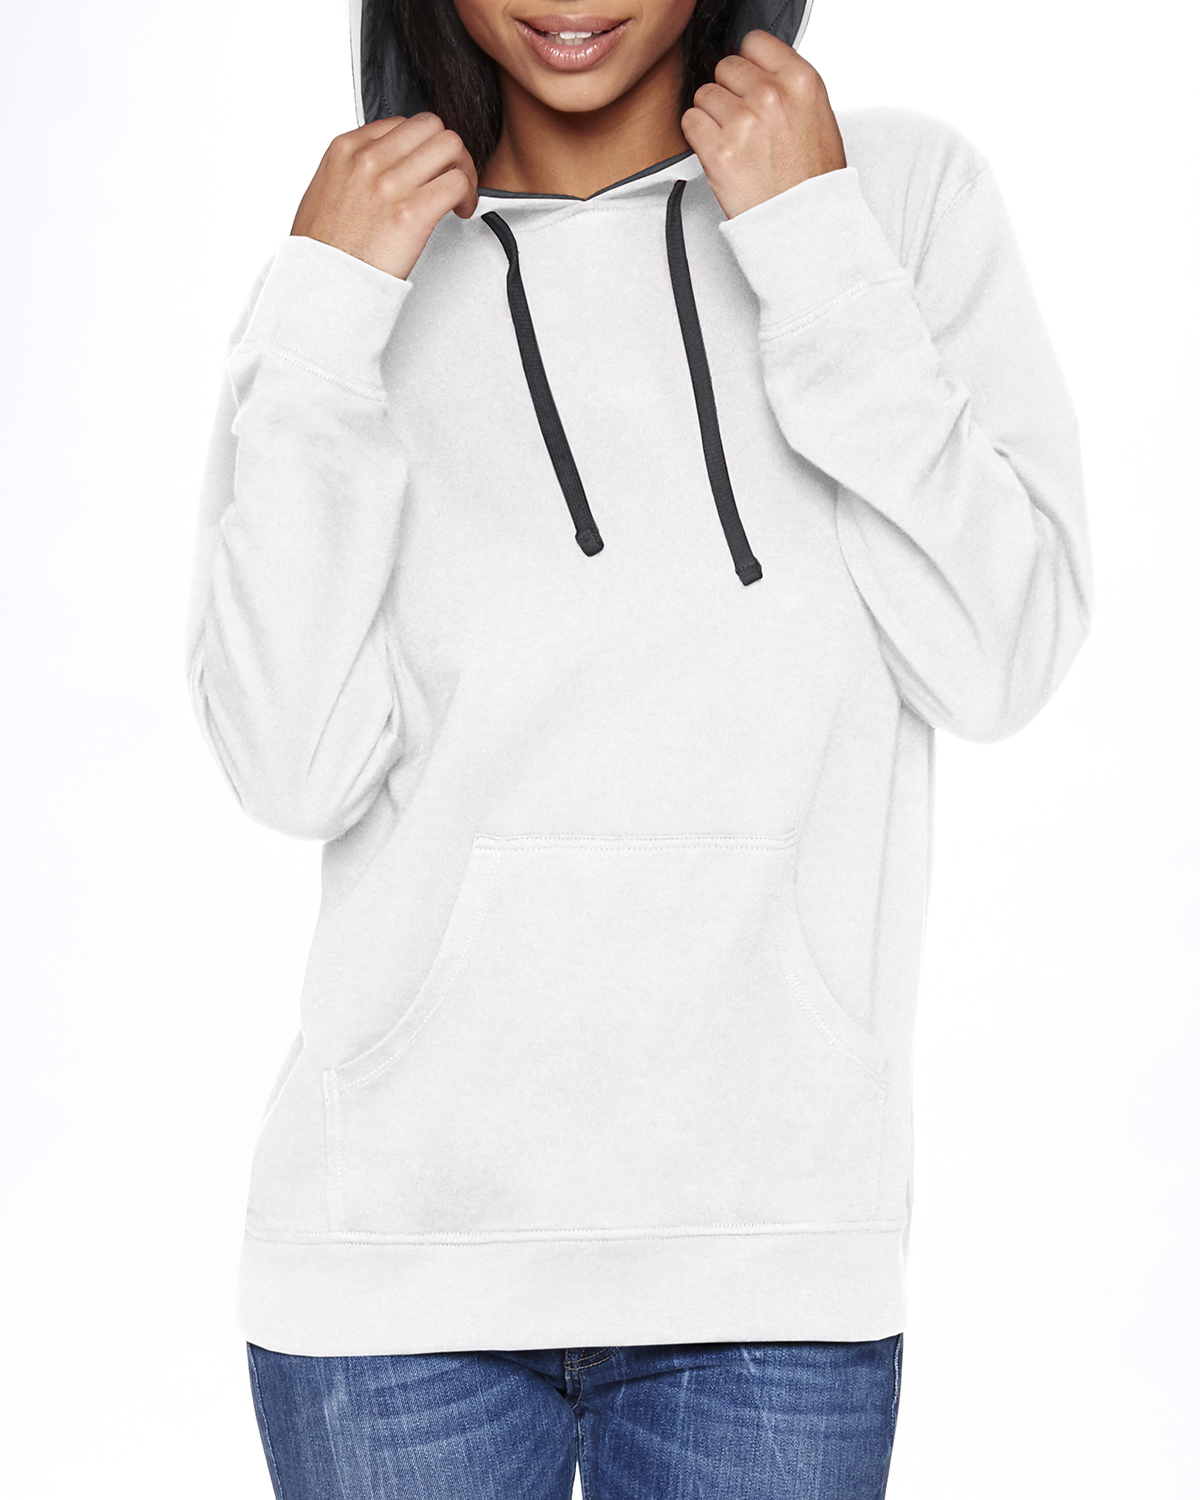 e8953ef7f980 Next Level Apparel 9301 - Unisex French Terry Pullover Hoodie  14.69 - Men s  Outerwear